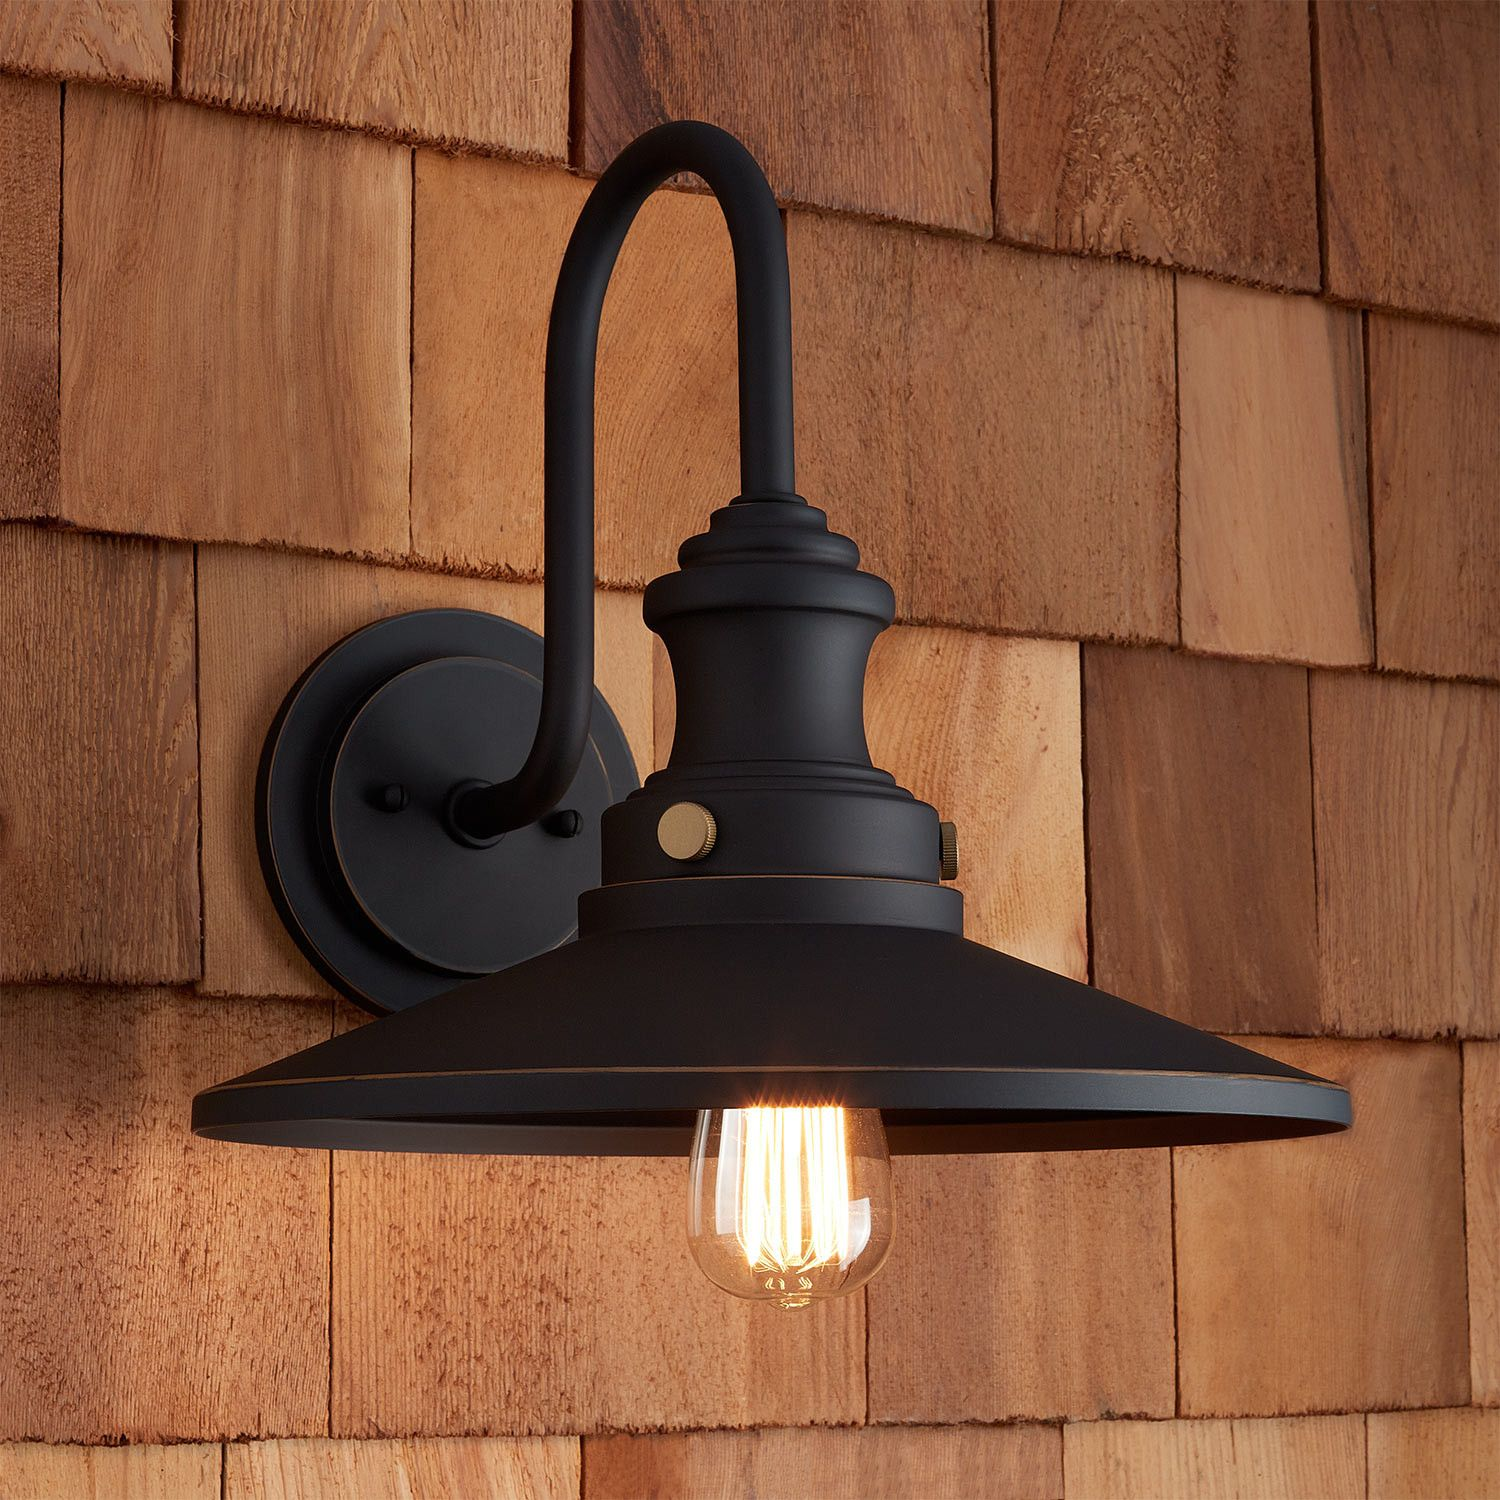 Pimmet Outdoor Entrance Wall Sconce In 2021 Front Porch Lighting Fixtures Wall Sconces Modern Sconces